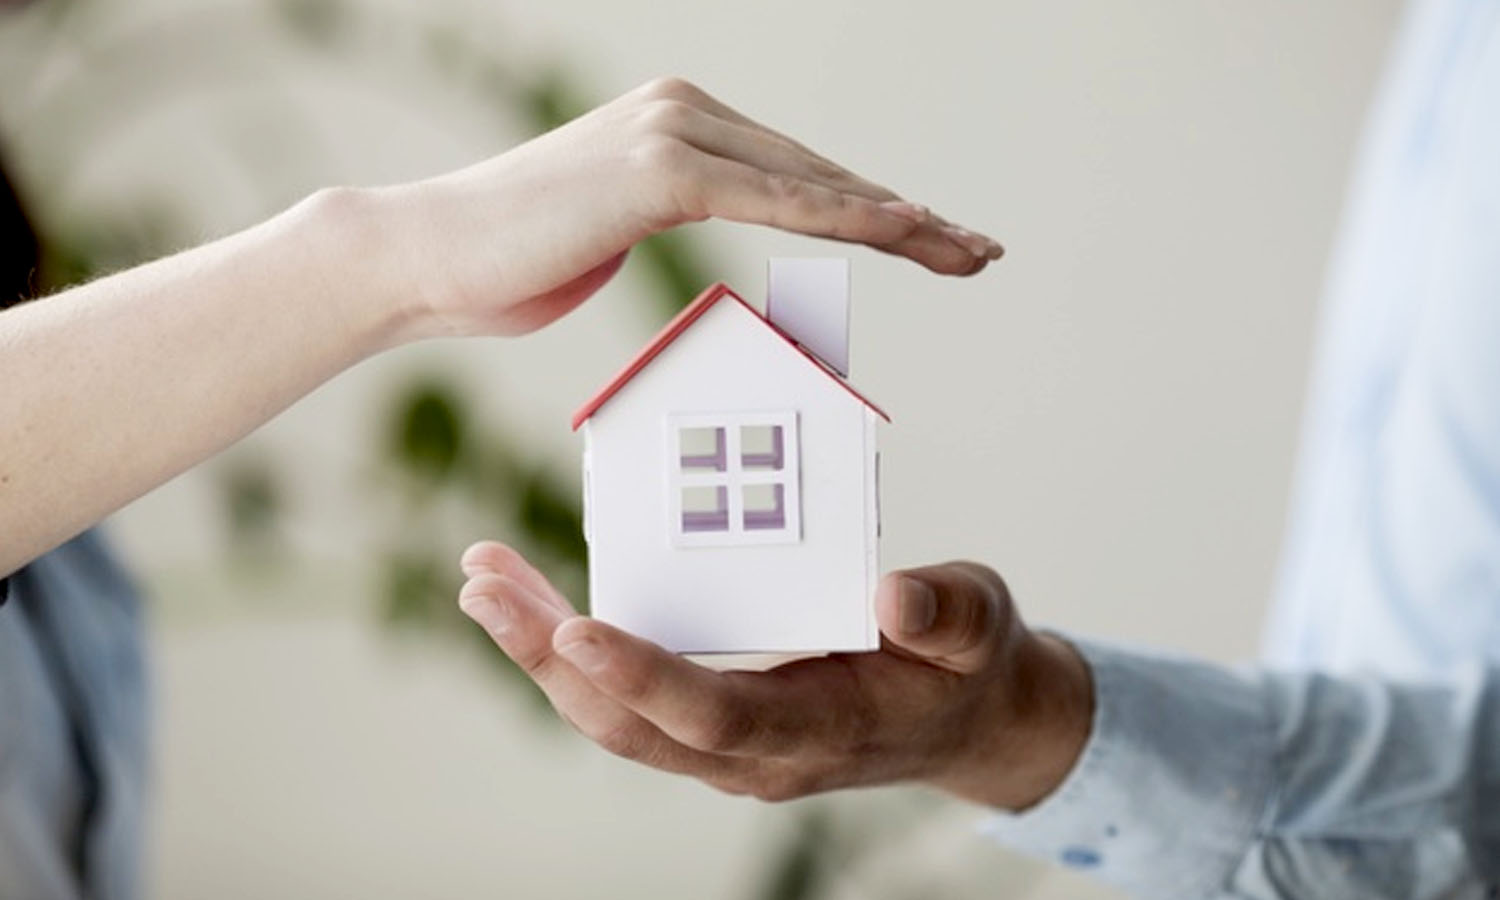 Home Insurance: Avoiding Scams and Misinformation during COVID-19